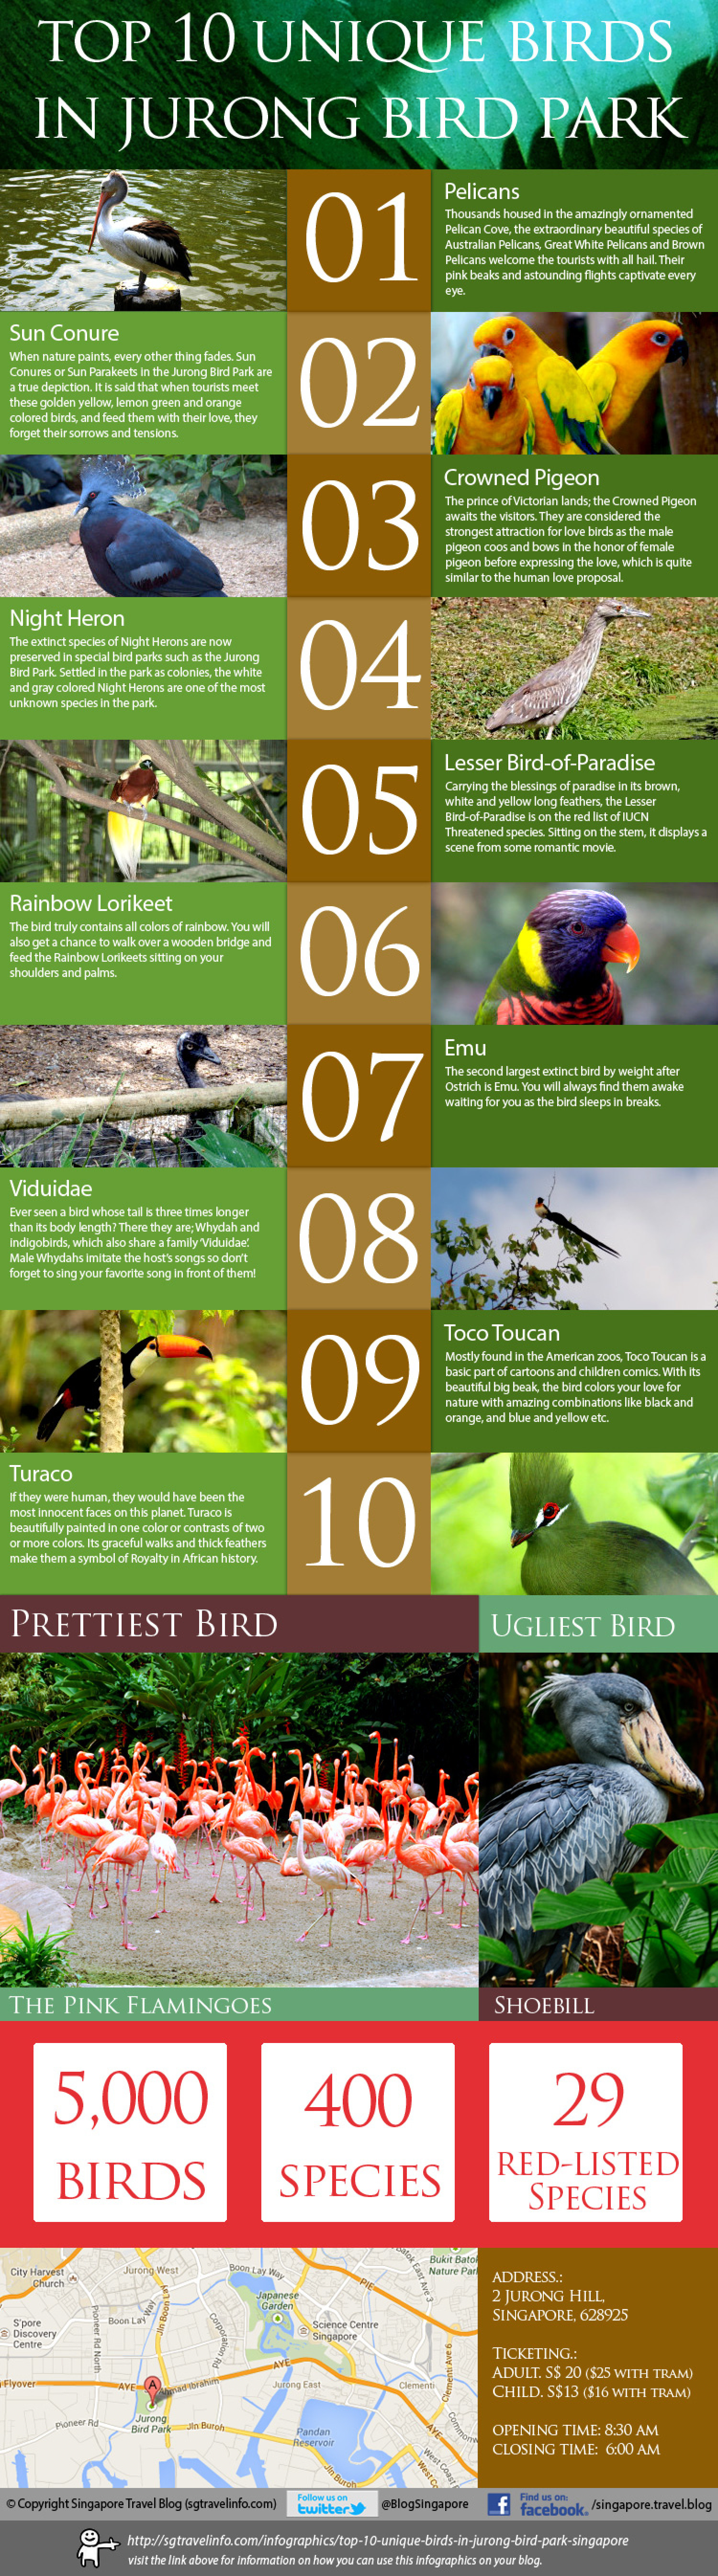 Top 10 unique birds in Jurong Bird Park Singapore Infographic